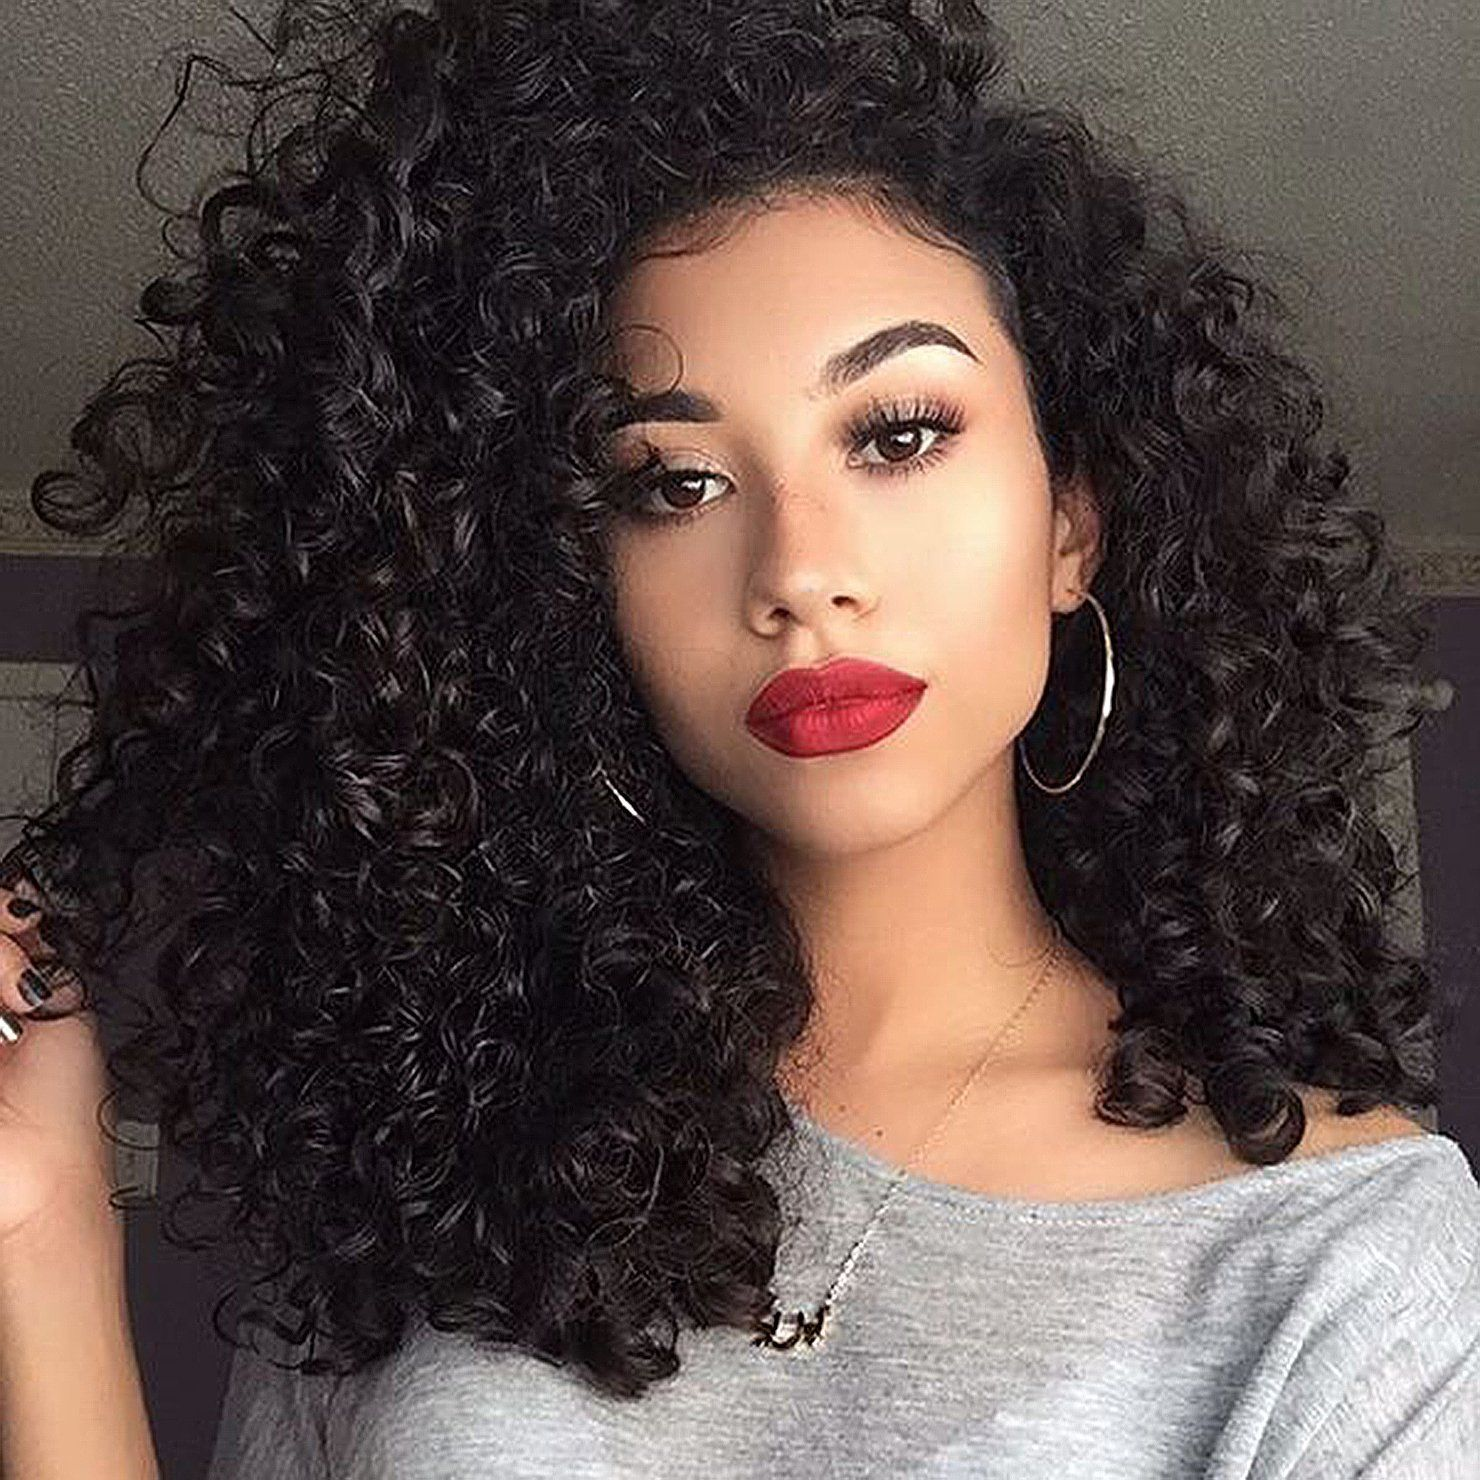 curly hair girls with Latina